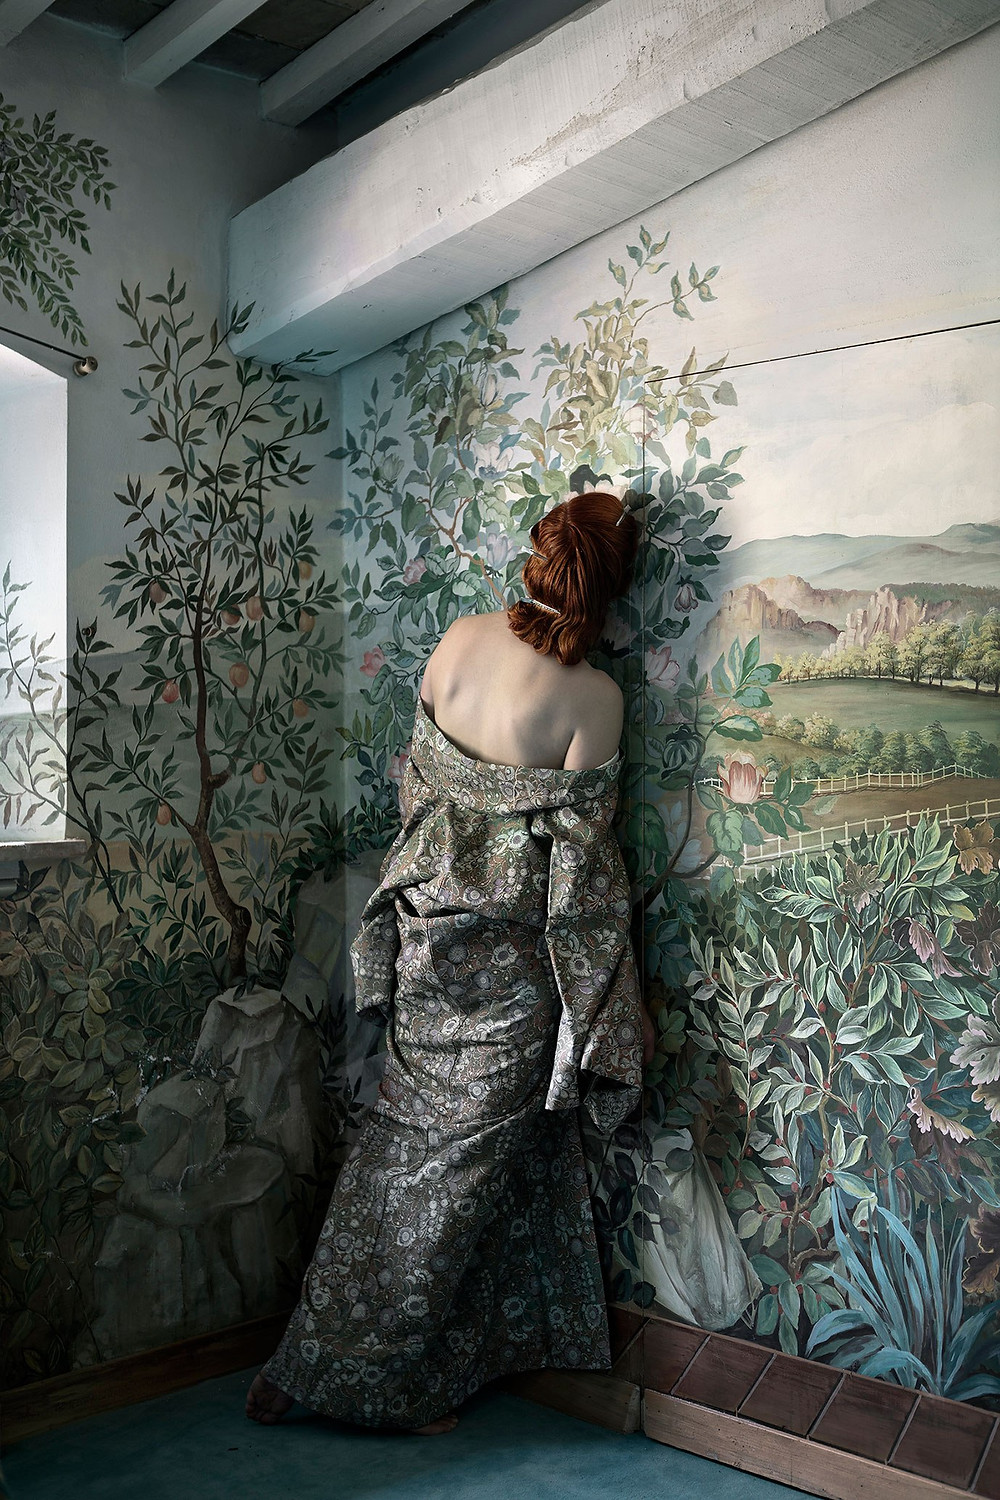 The-Woman-Who-Never-Existed-by-Anja-Niemi-Yellowtrace-01